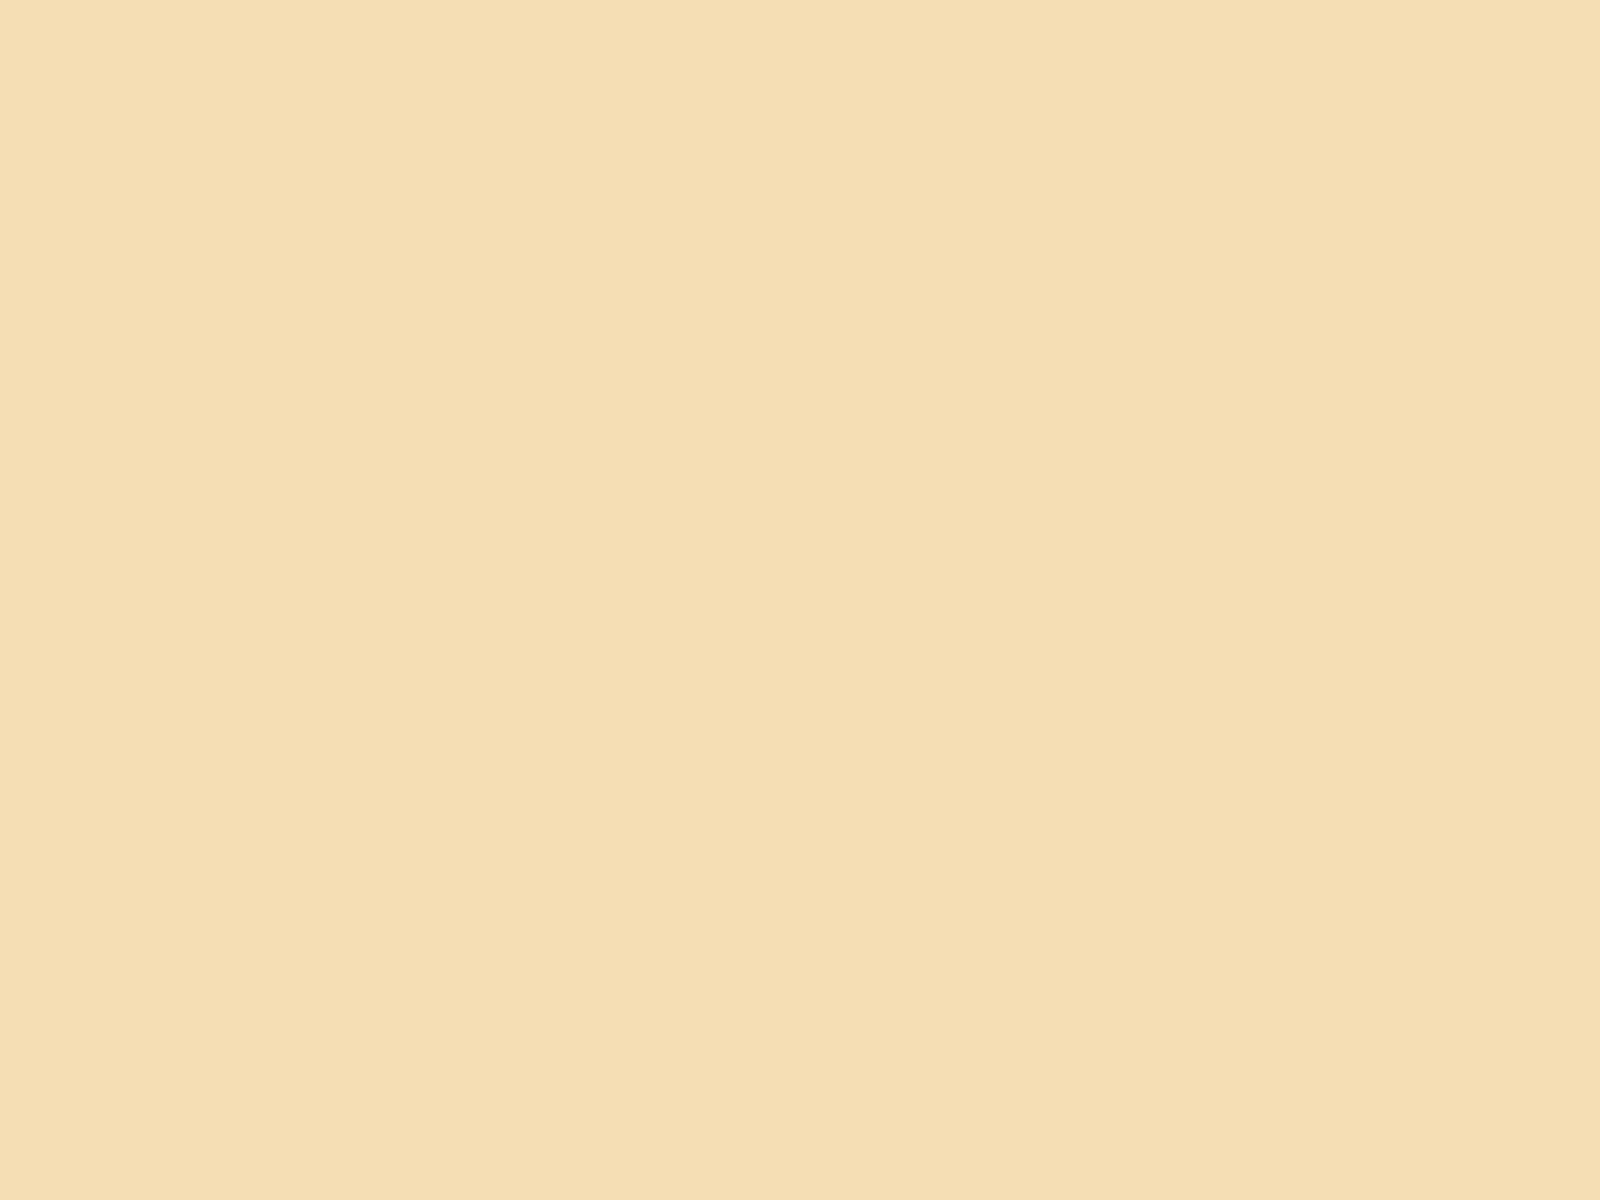 1600x1200 Wheat Solid Color Background